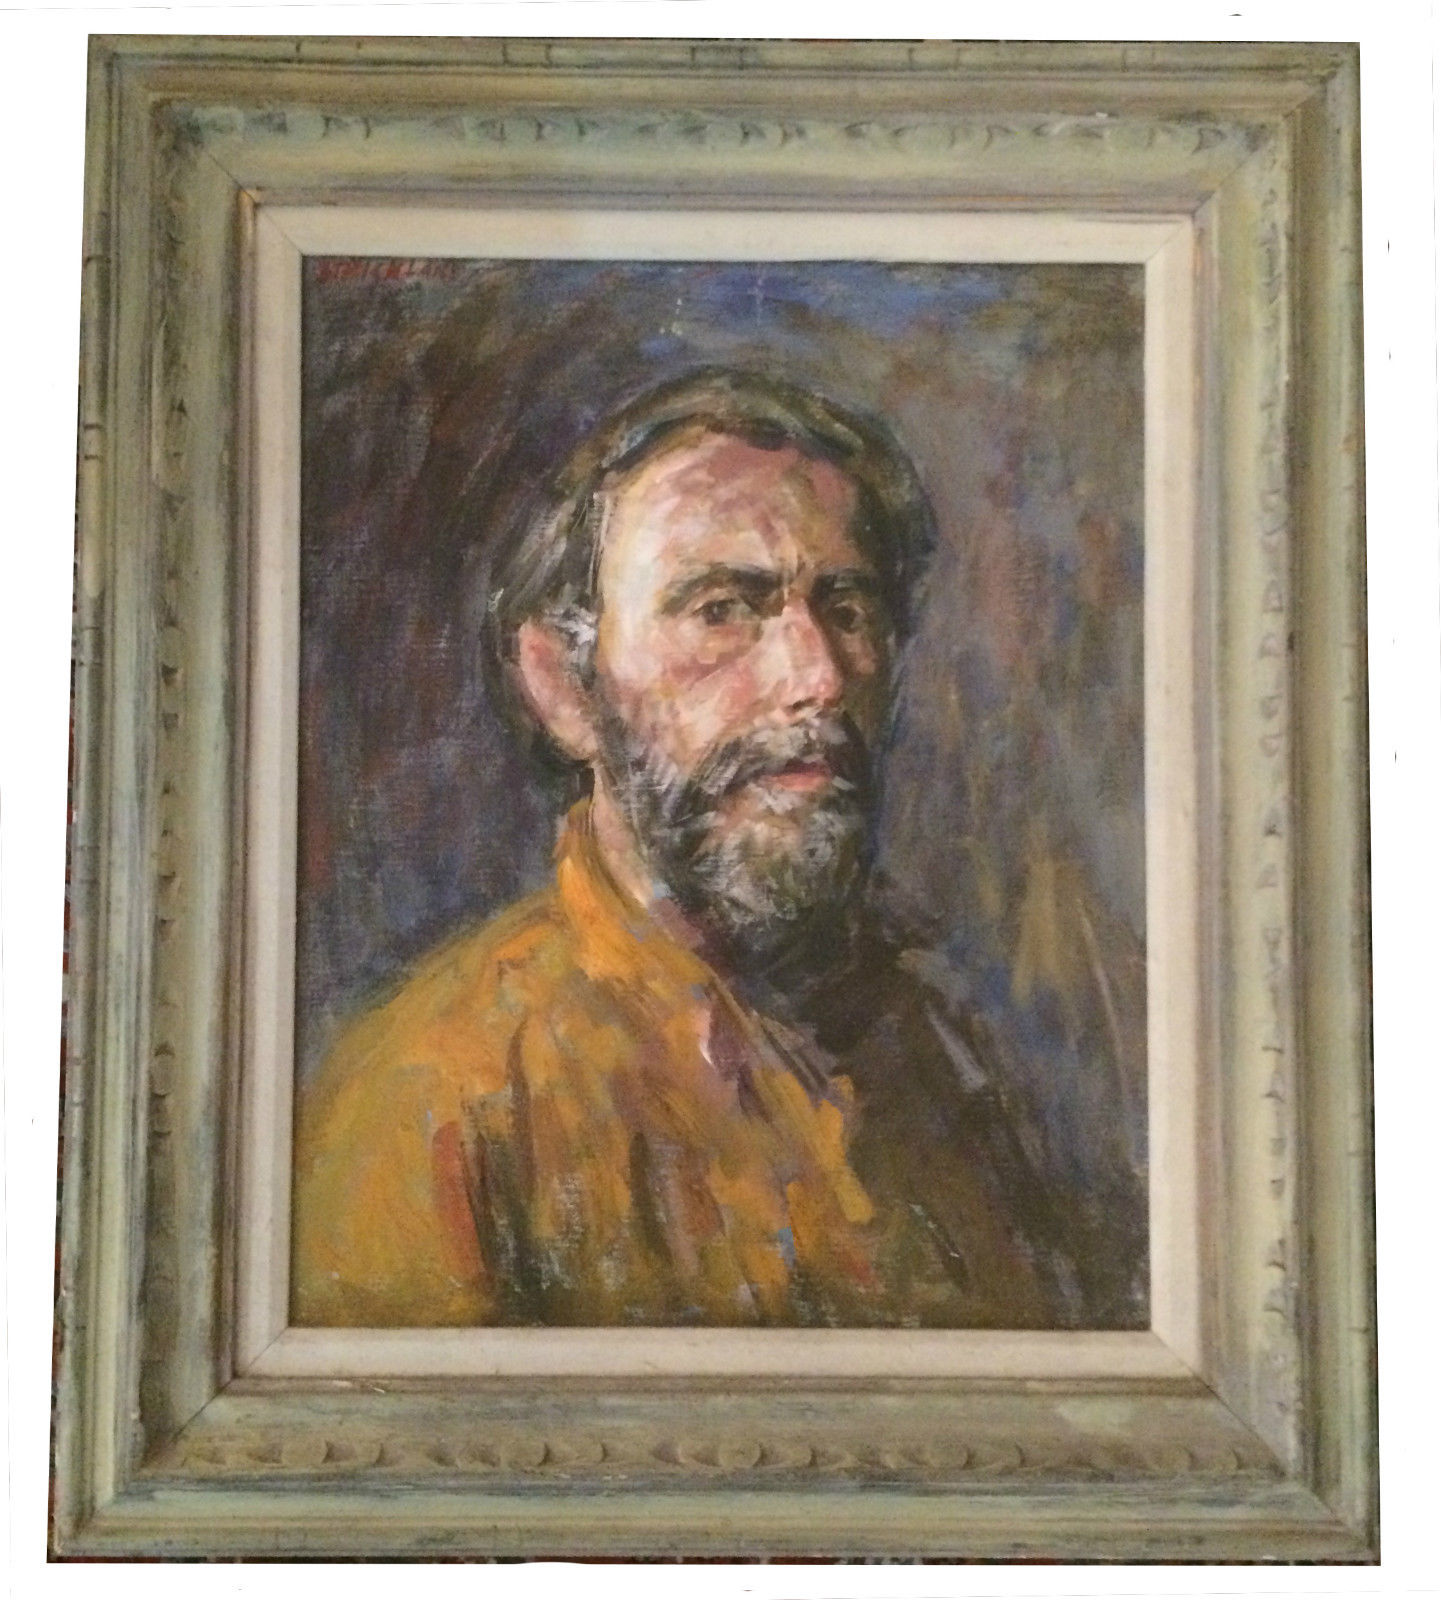 New Jersey Home Painting From J S Painting: Thomas J Strickland Self Portrait Oil Impressionist